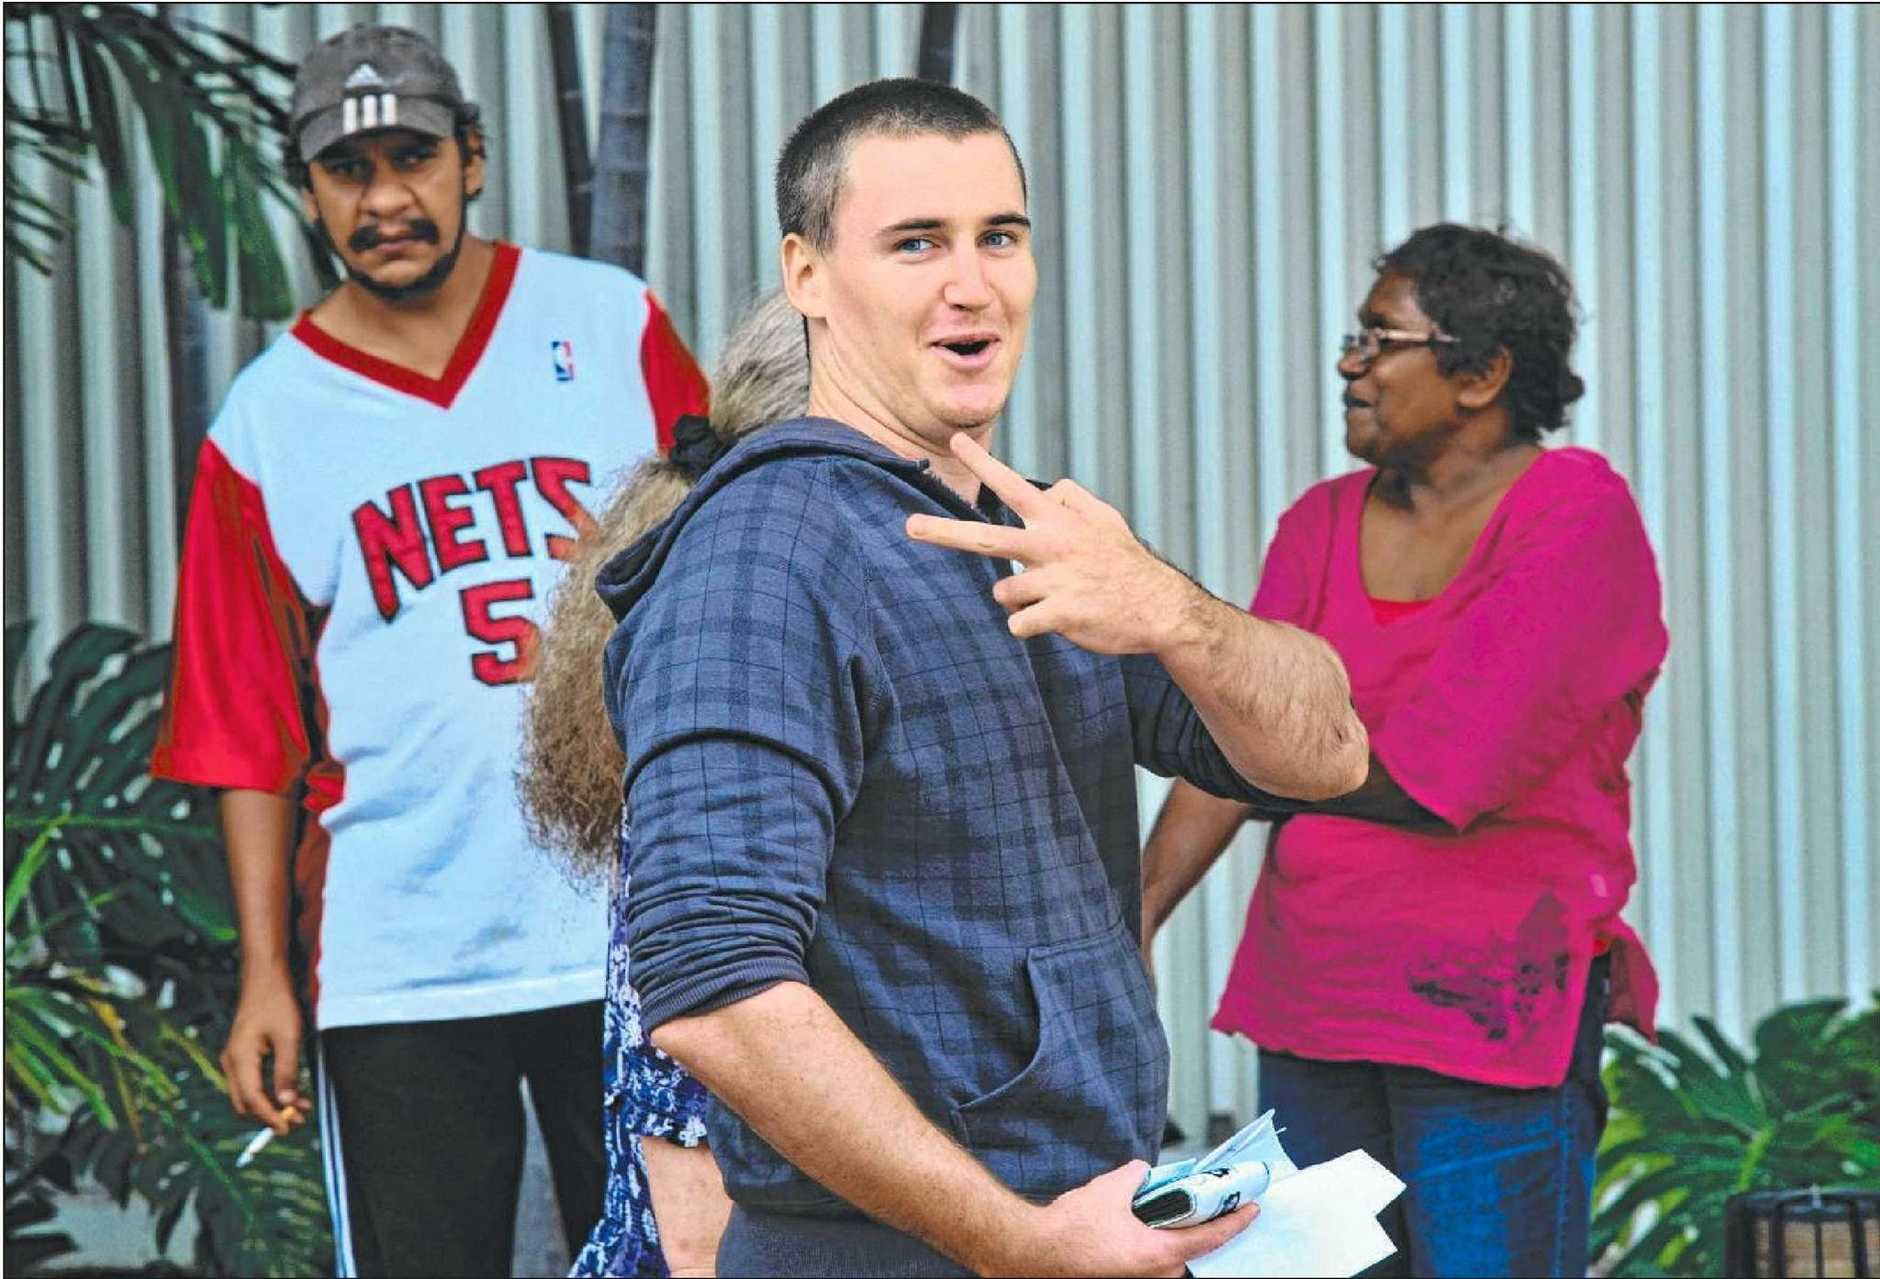 Ryan Andrew Whitfield (front), 27, pleaded guilty to a raft of charges on Friday in Mackay Magistrates Court, linked to a car theft, repeatedly evading police and driving dangerously earlier this year. He appeared from prison.